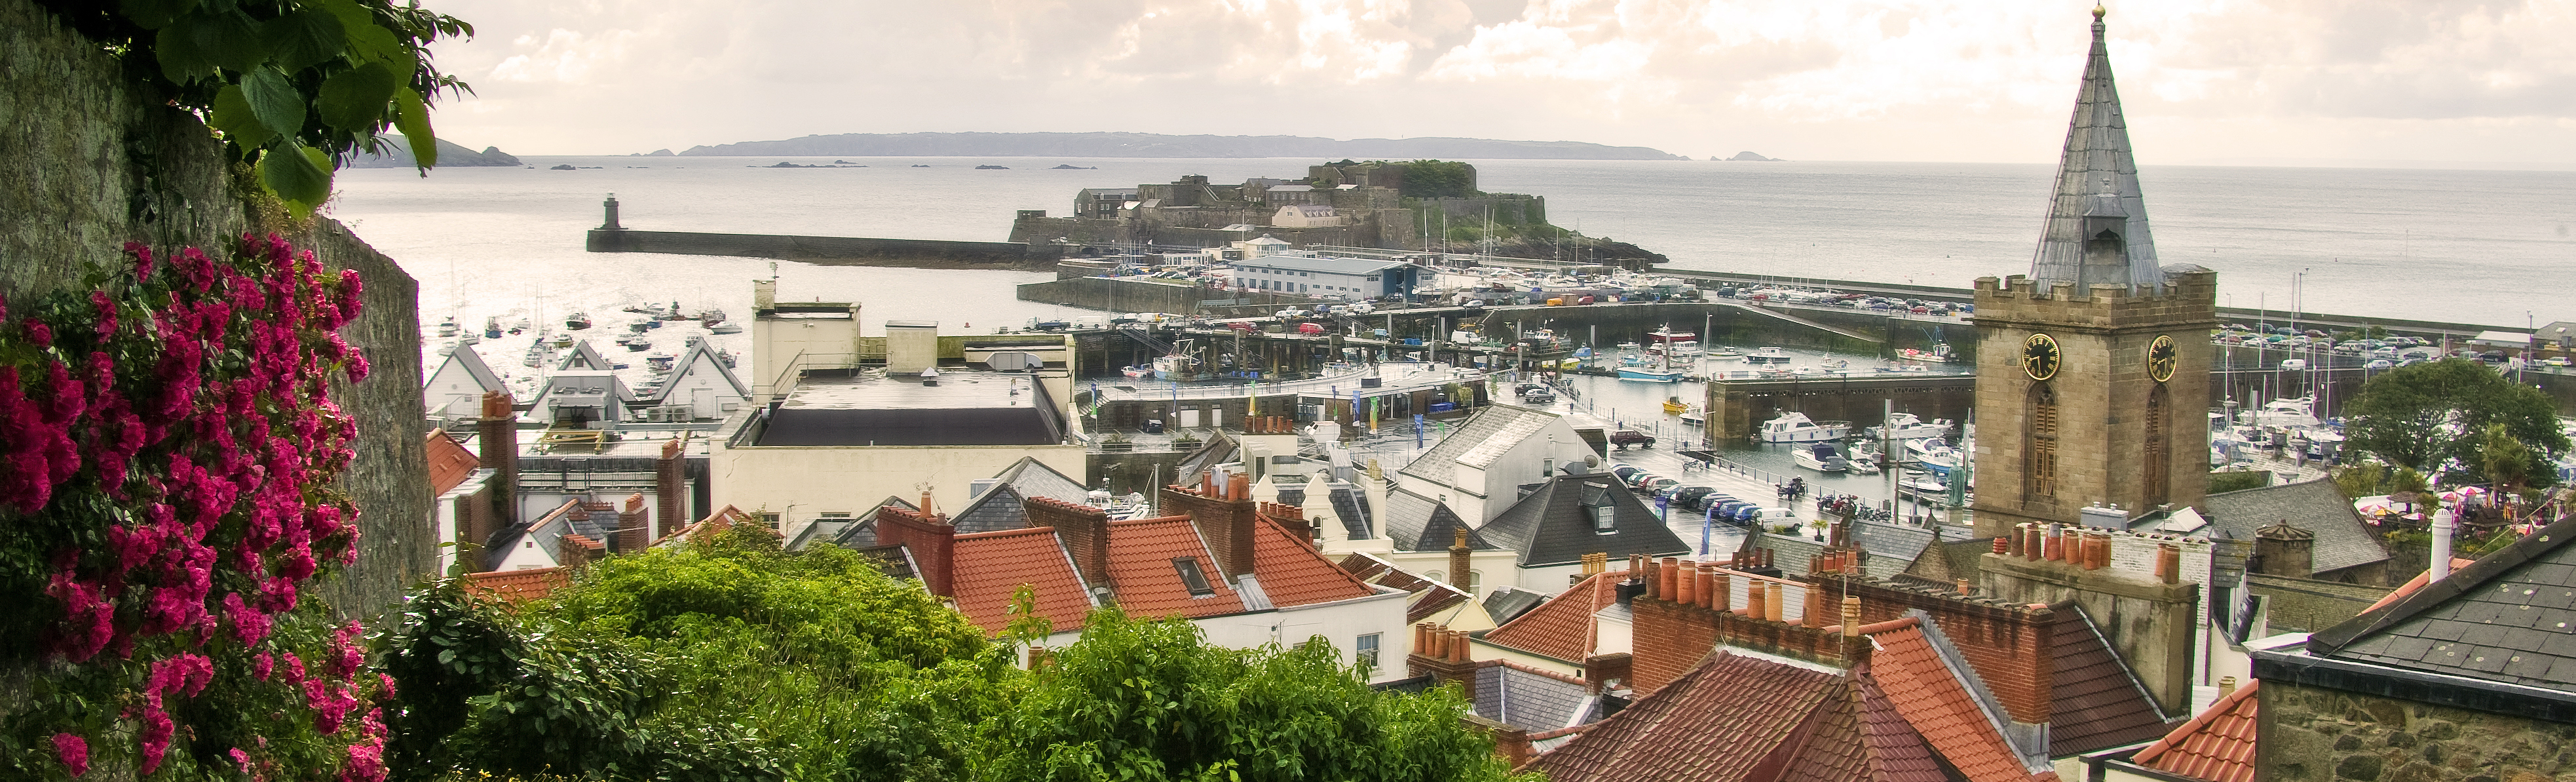 Guernsey - Fort